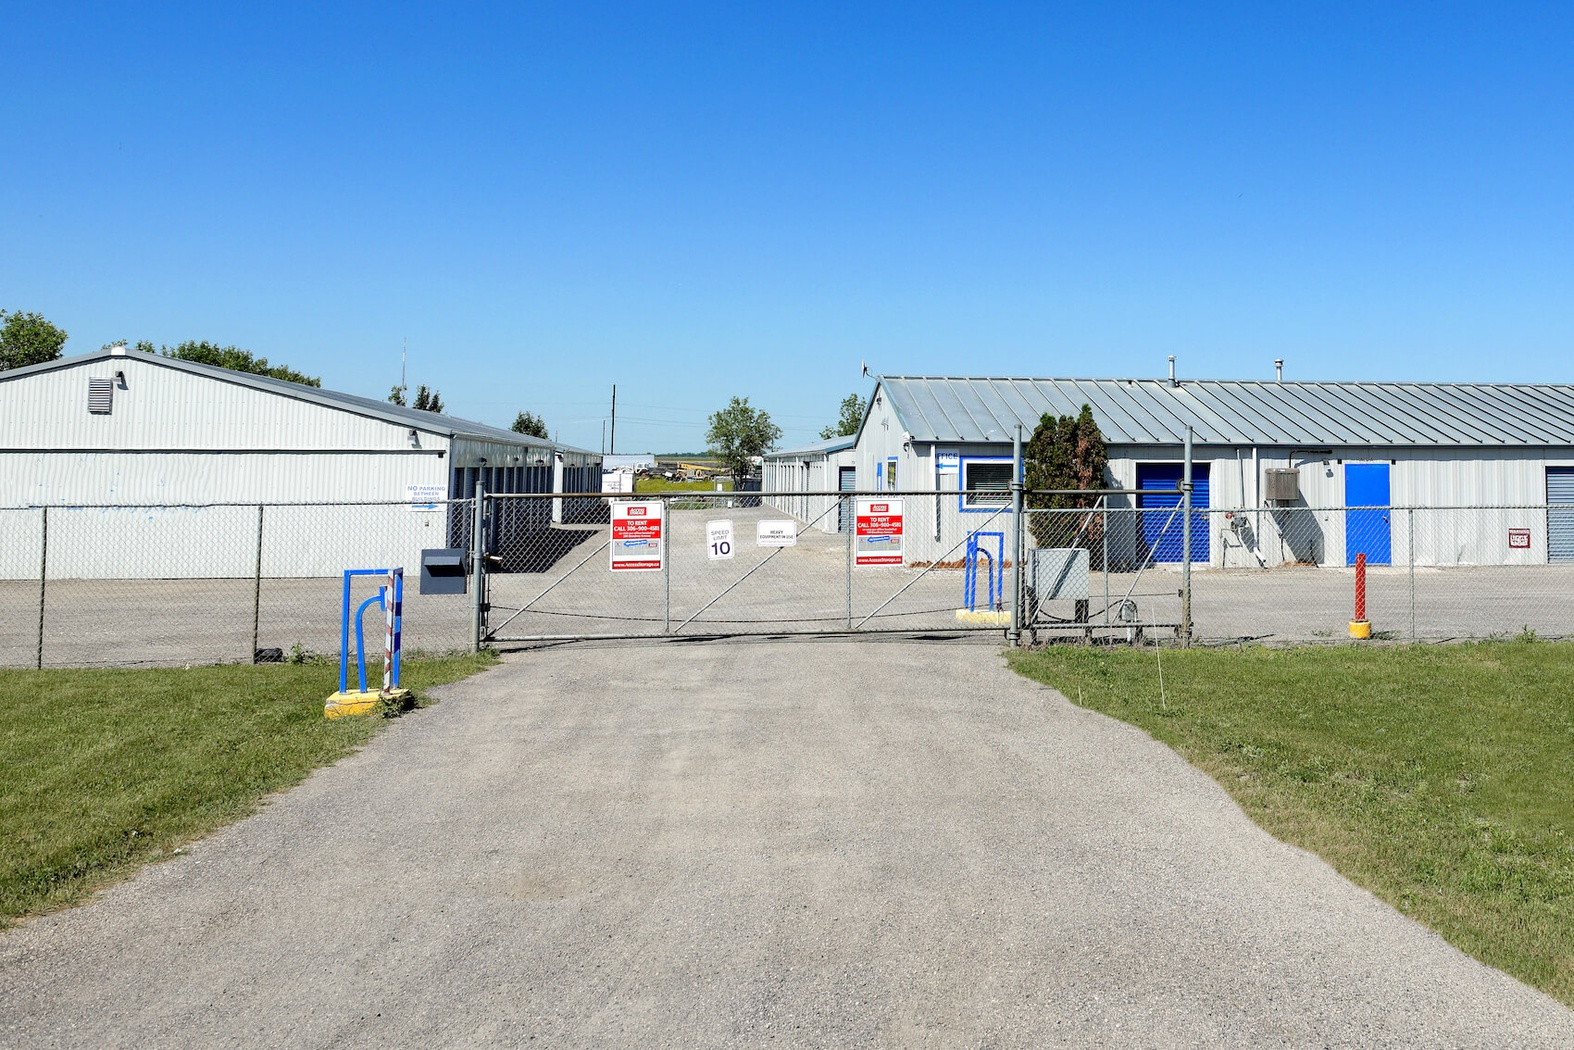 Rent Regina storage units at 6050 Diefenbaker Avenue. We offer a wide-range of affordable self storage units and your first 4 weeks are free!